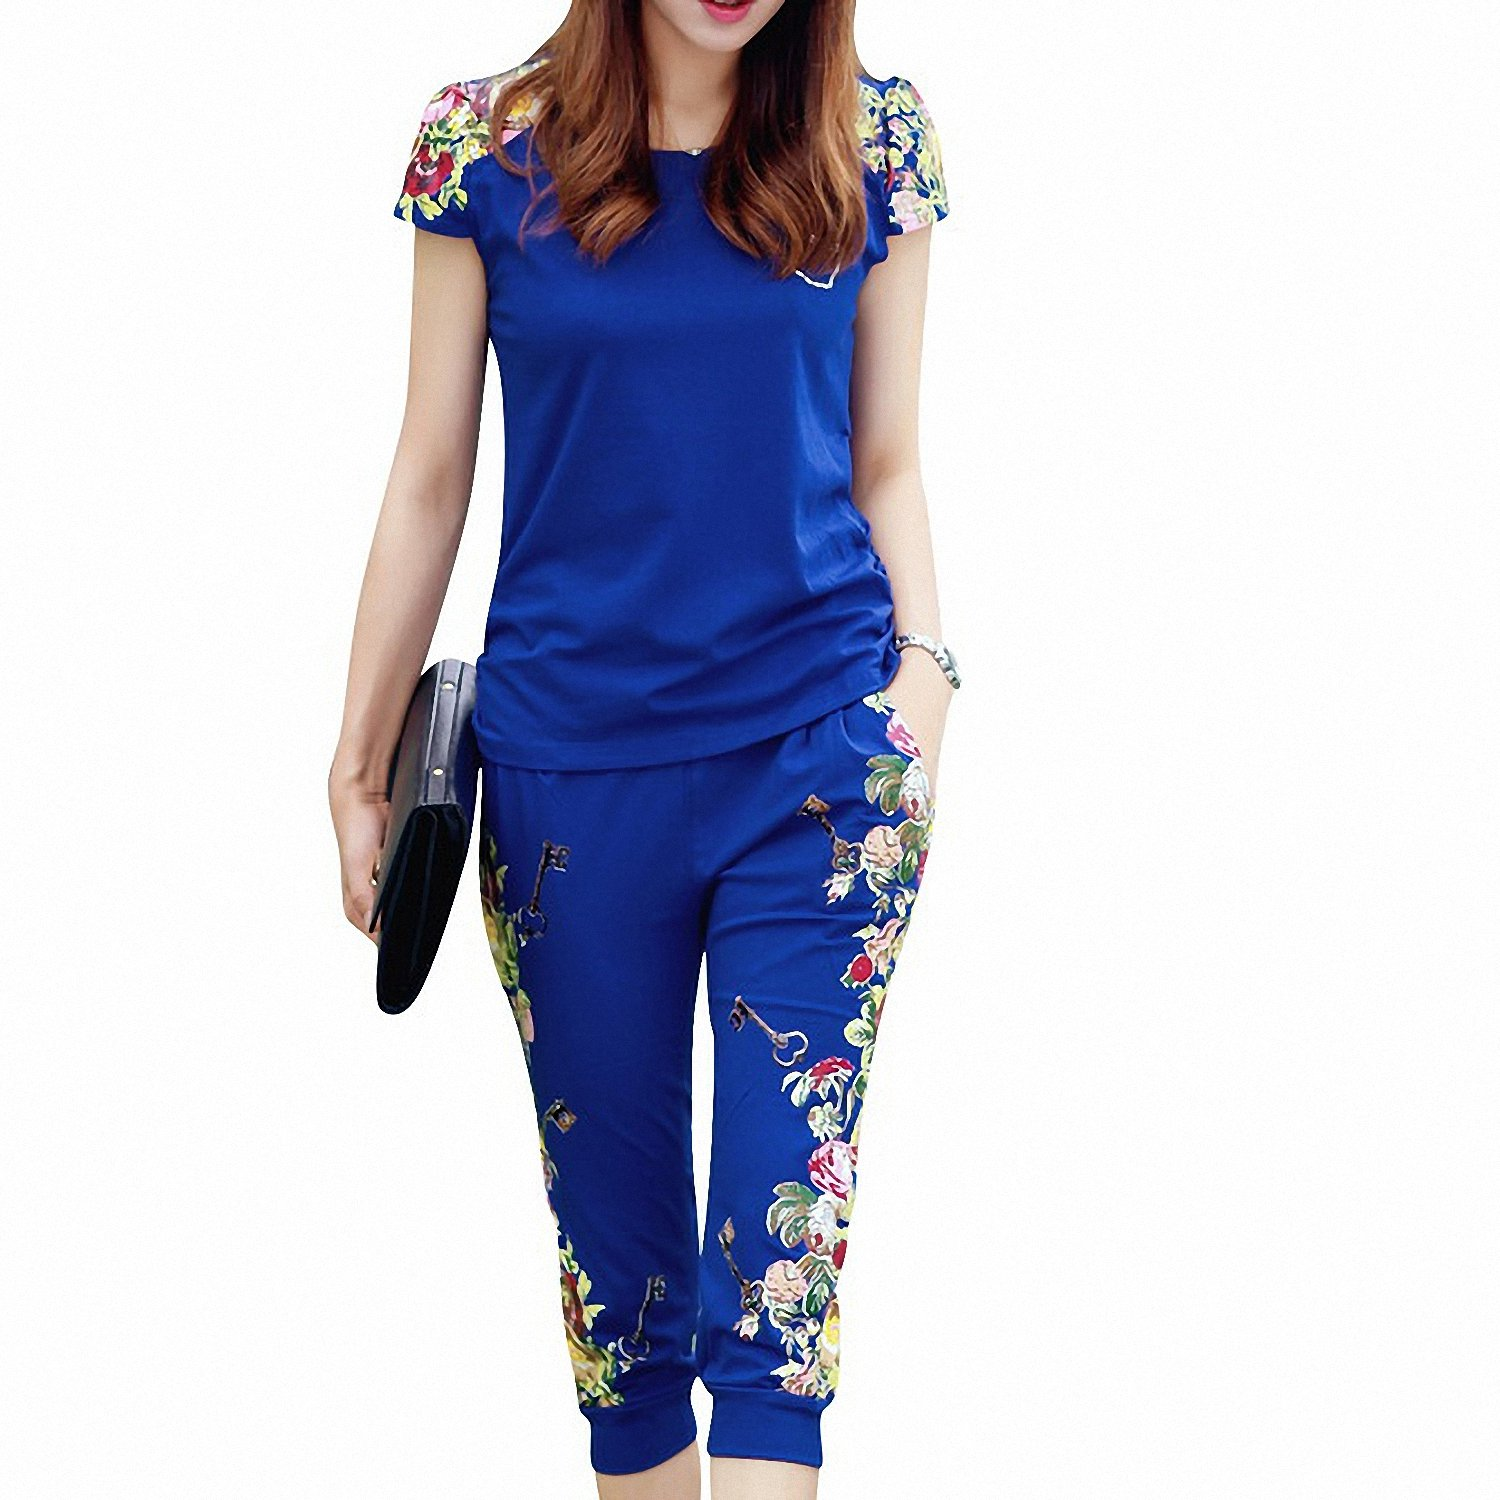 Drawingo Fashion Flowers Printed Women Tracksuit Casual T-Shirts + Pants Lady Clothing Suit Size L-4Xl China Style Summer Lady Sets Mid Blue XL